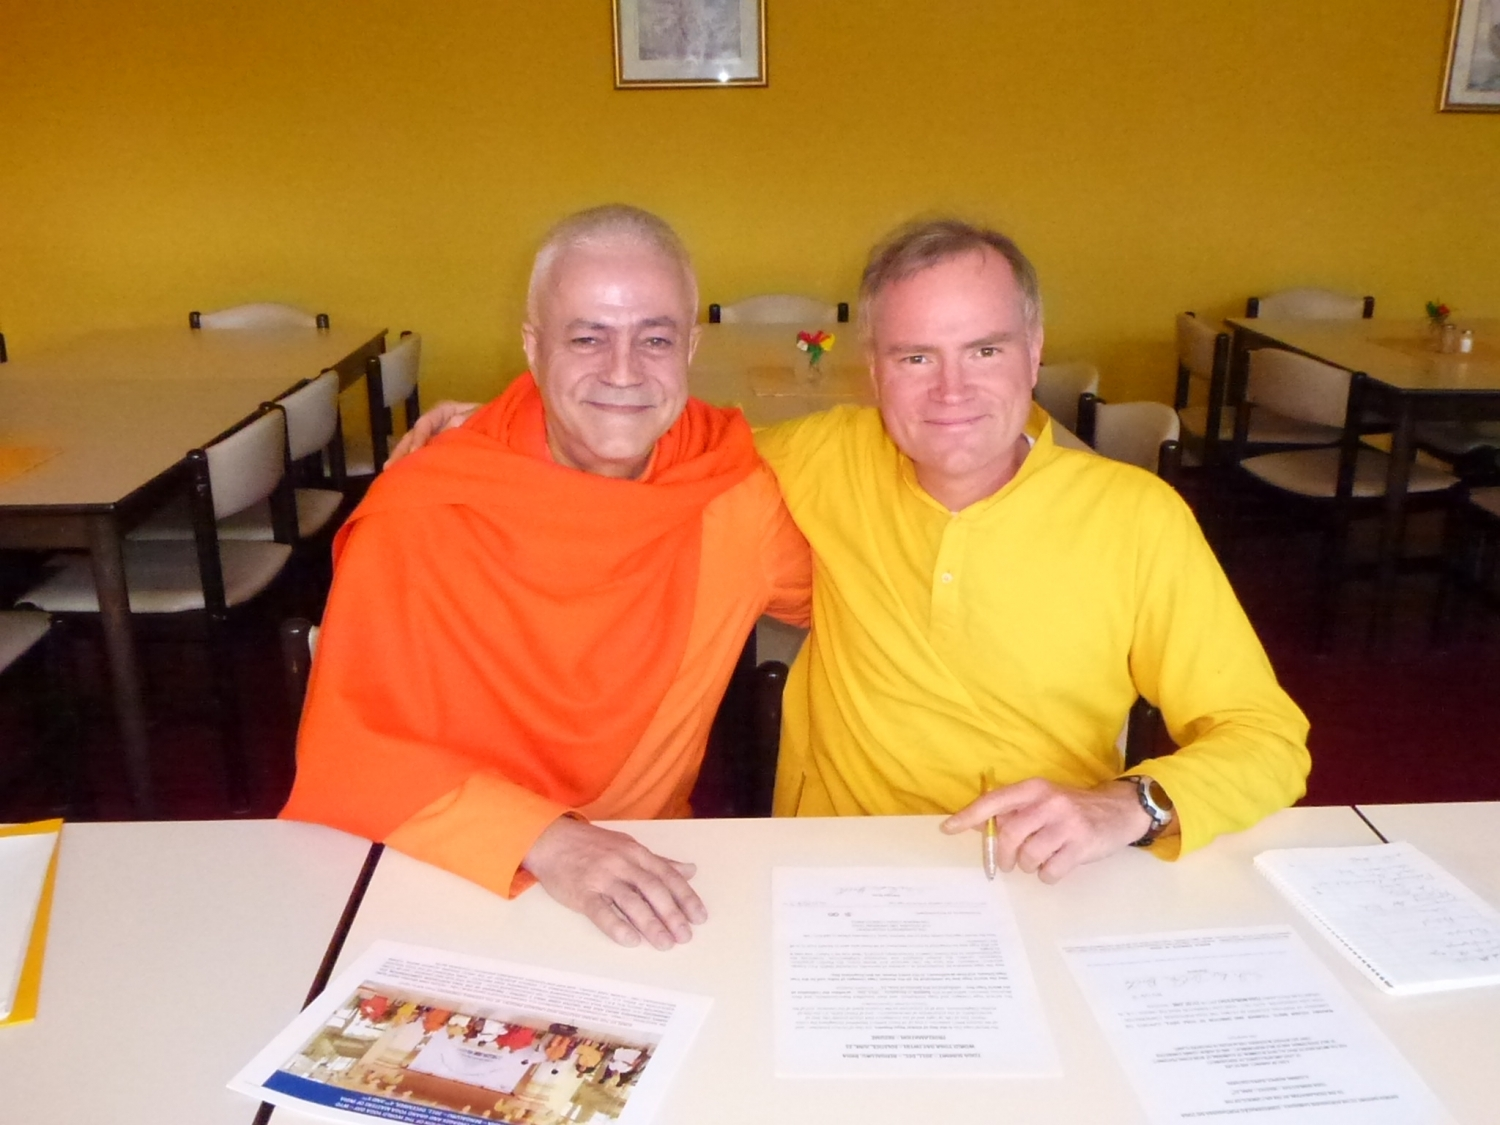 With Master Sukadev Bretz, Bad-Meinberg, Germany